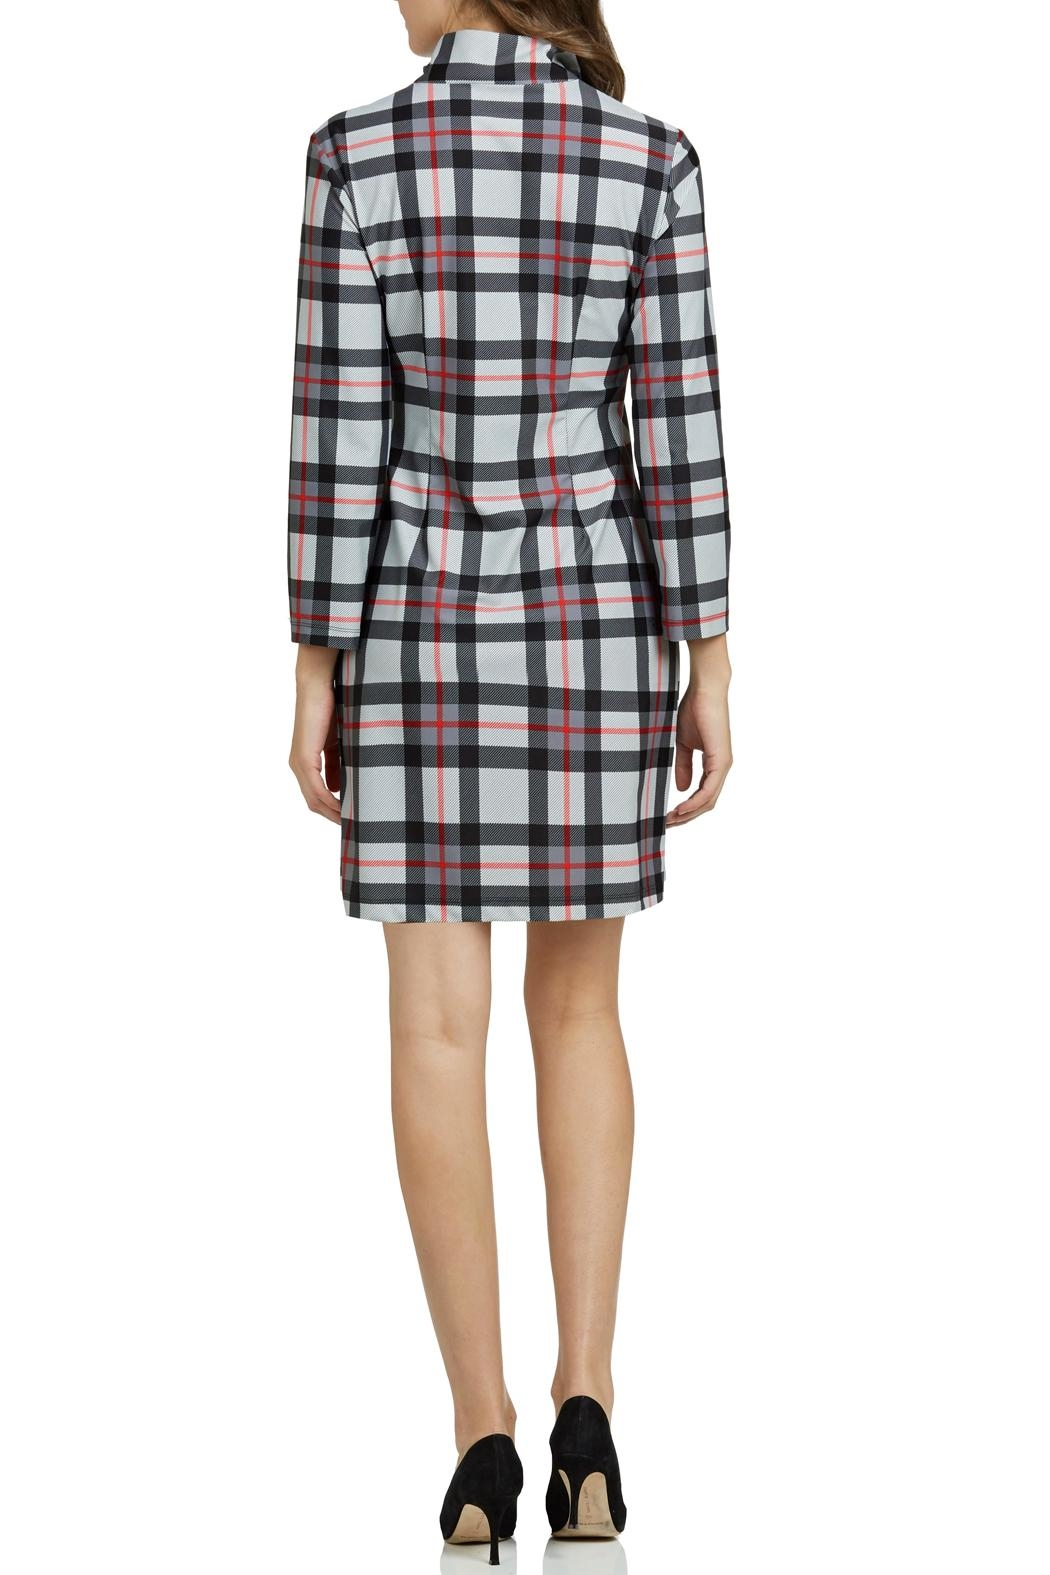 Jude Connally Elodie Dress Jude-Cloth - Front Full Image